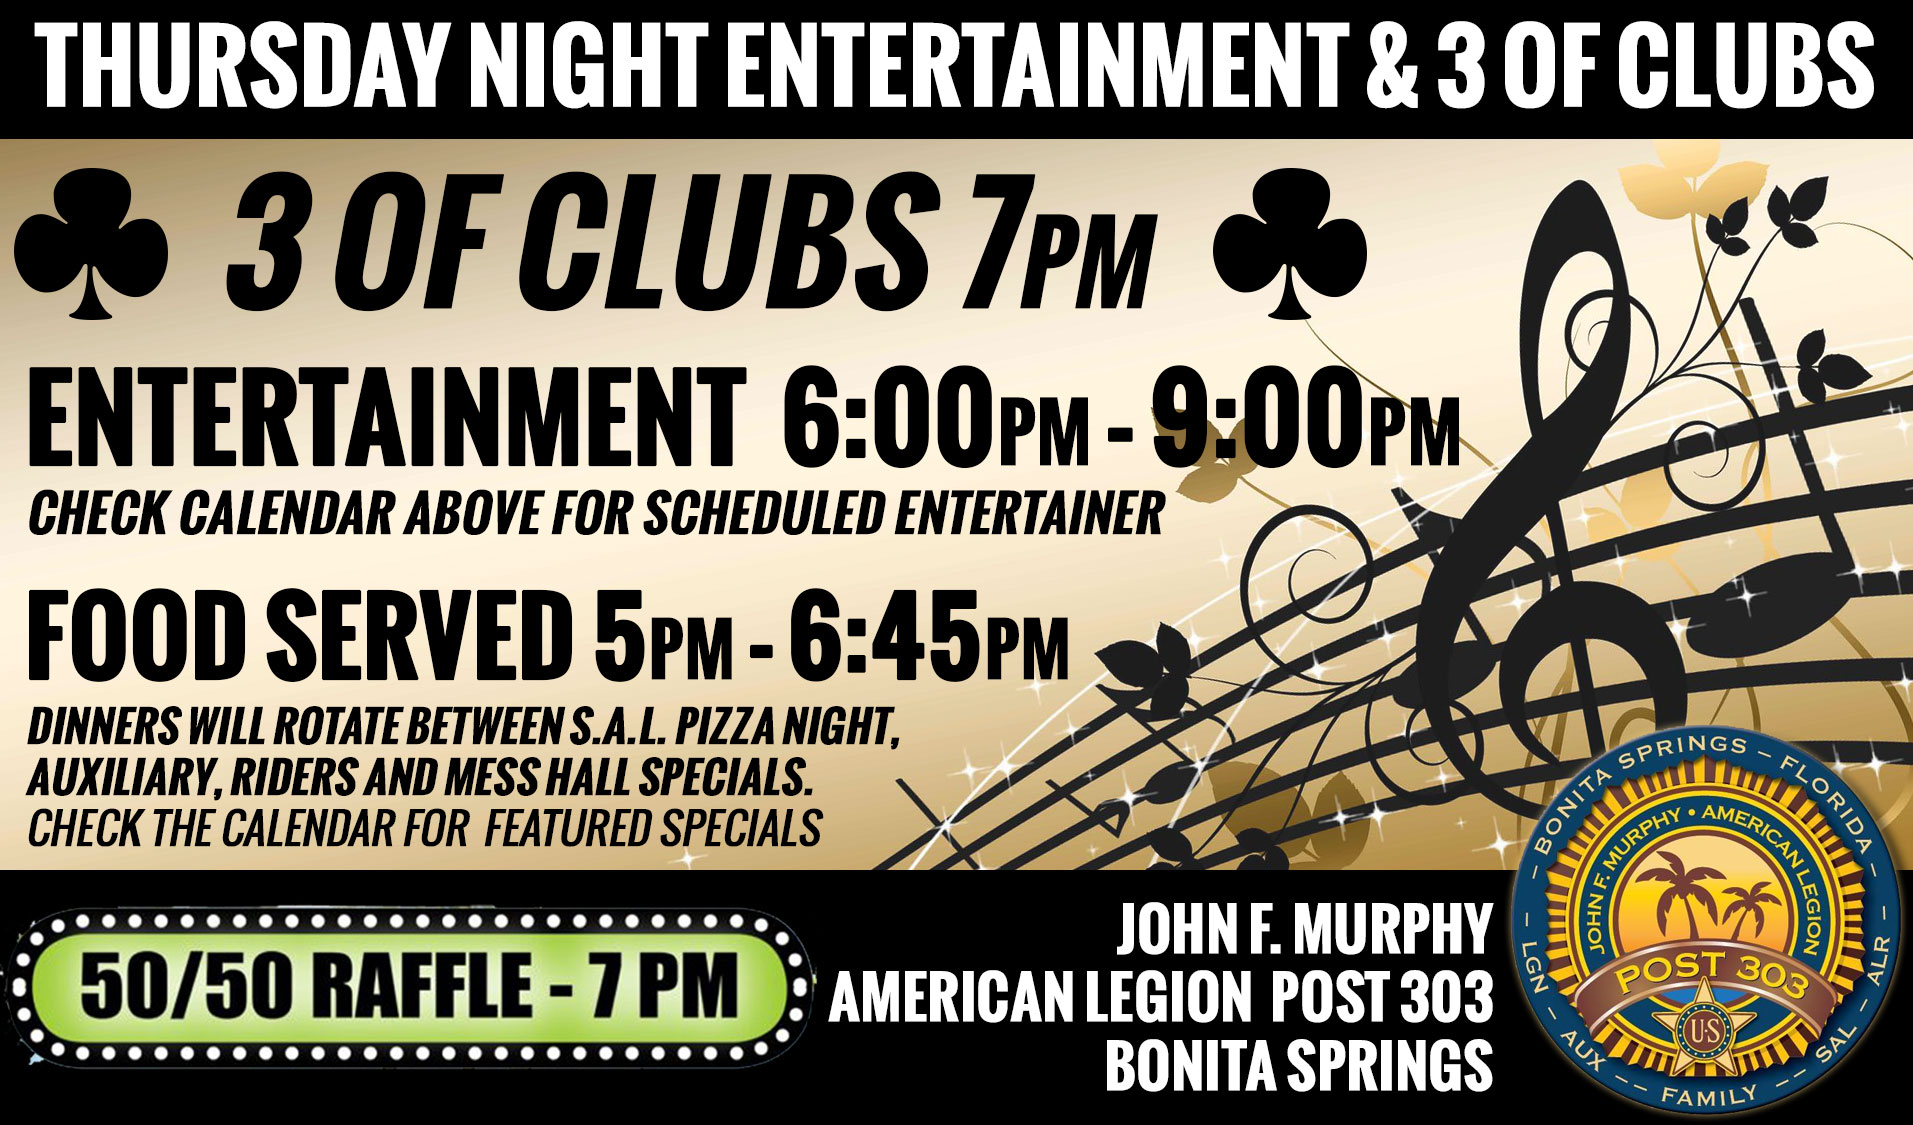 thursday night events banner